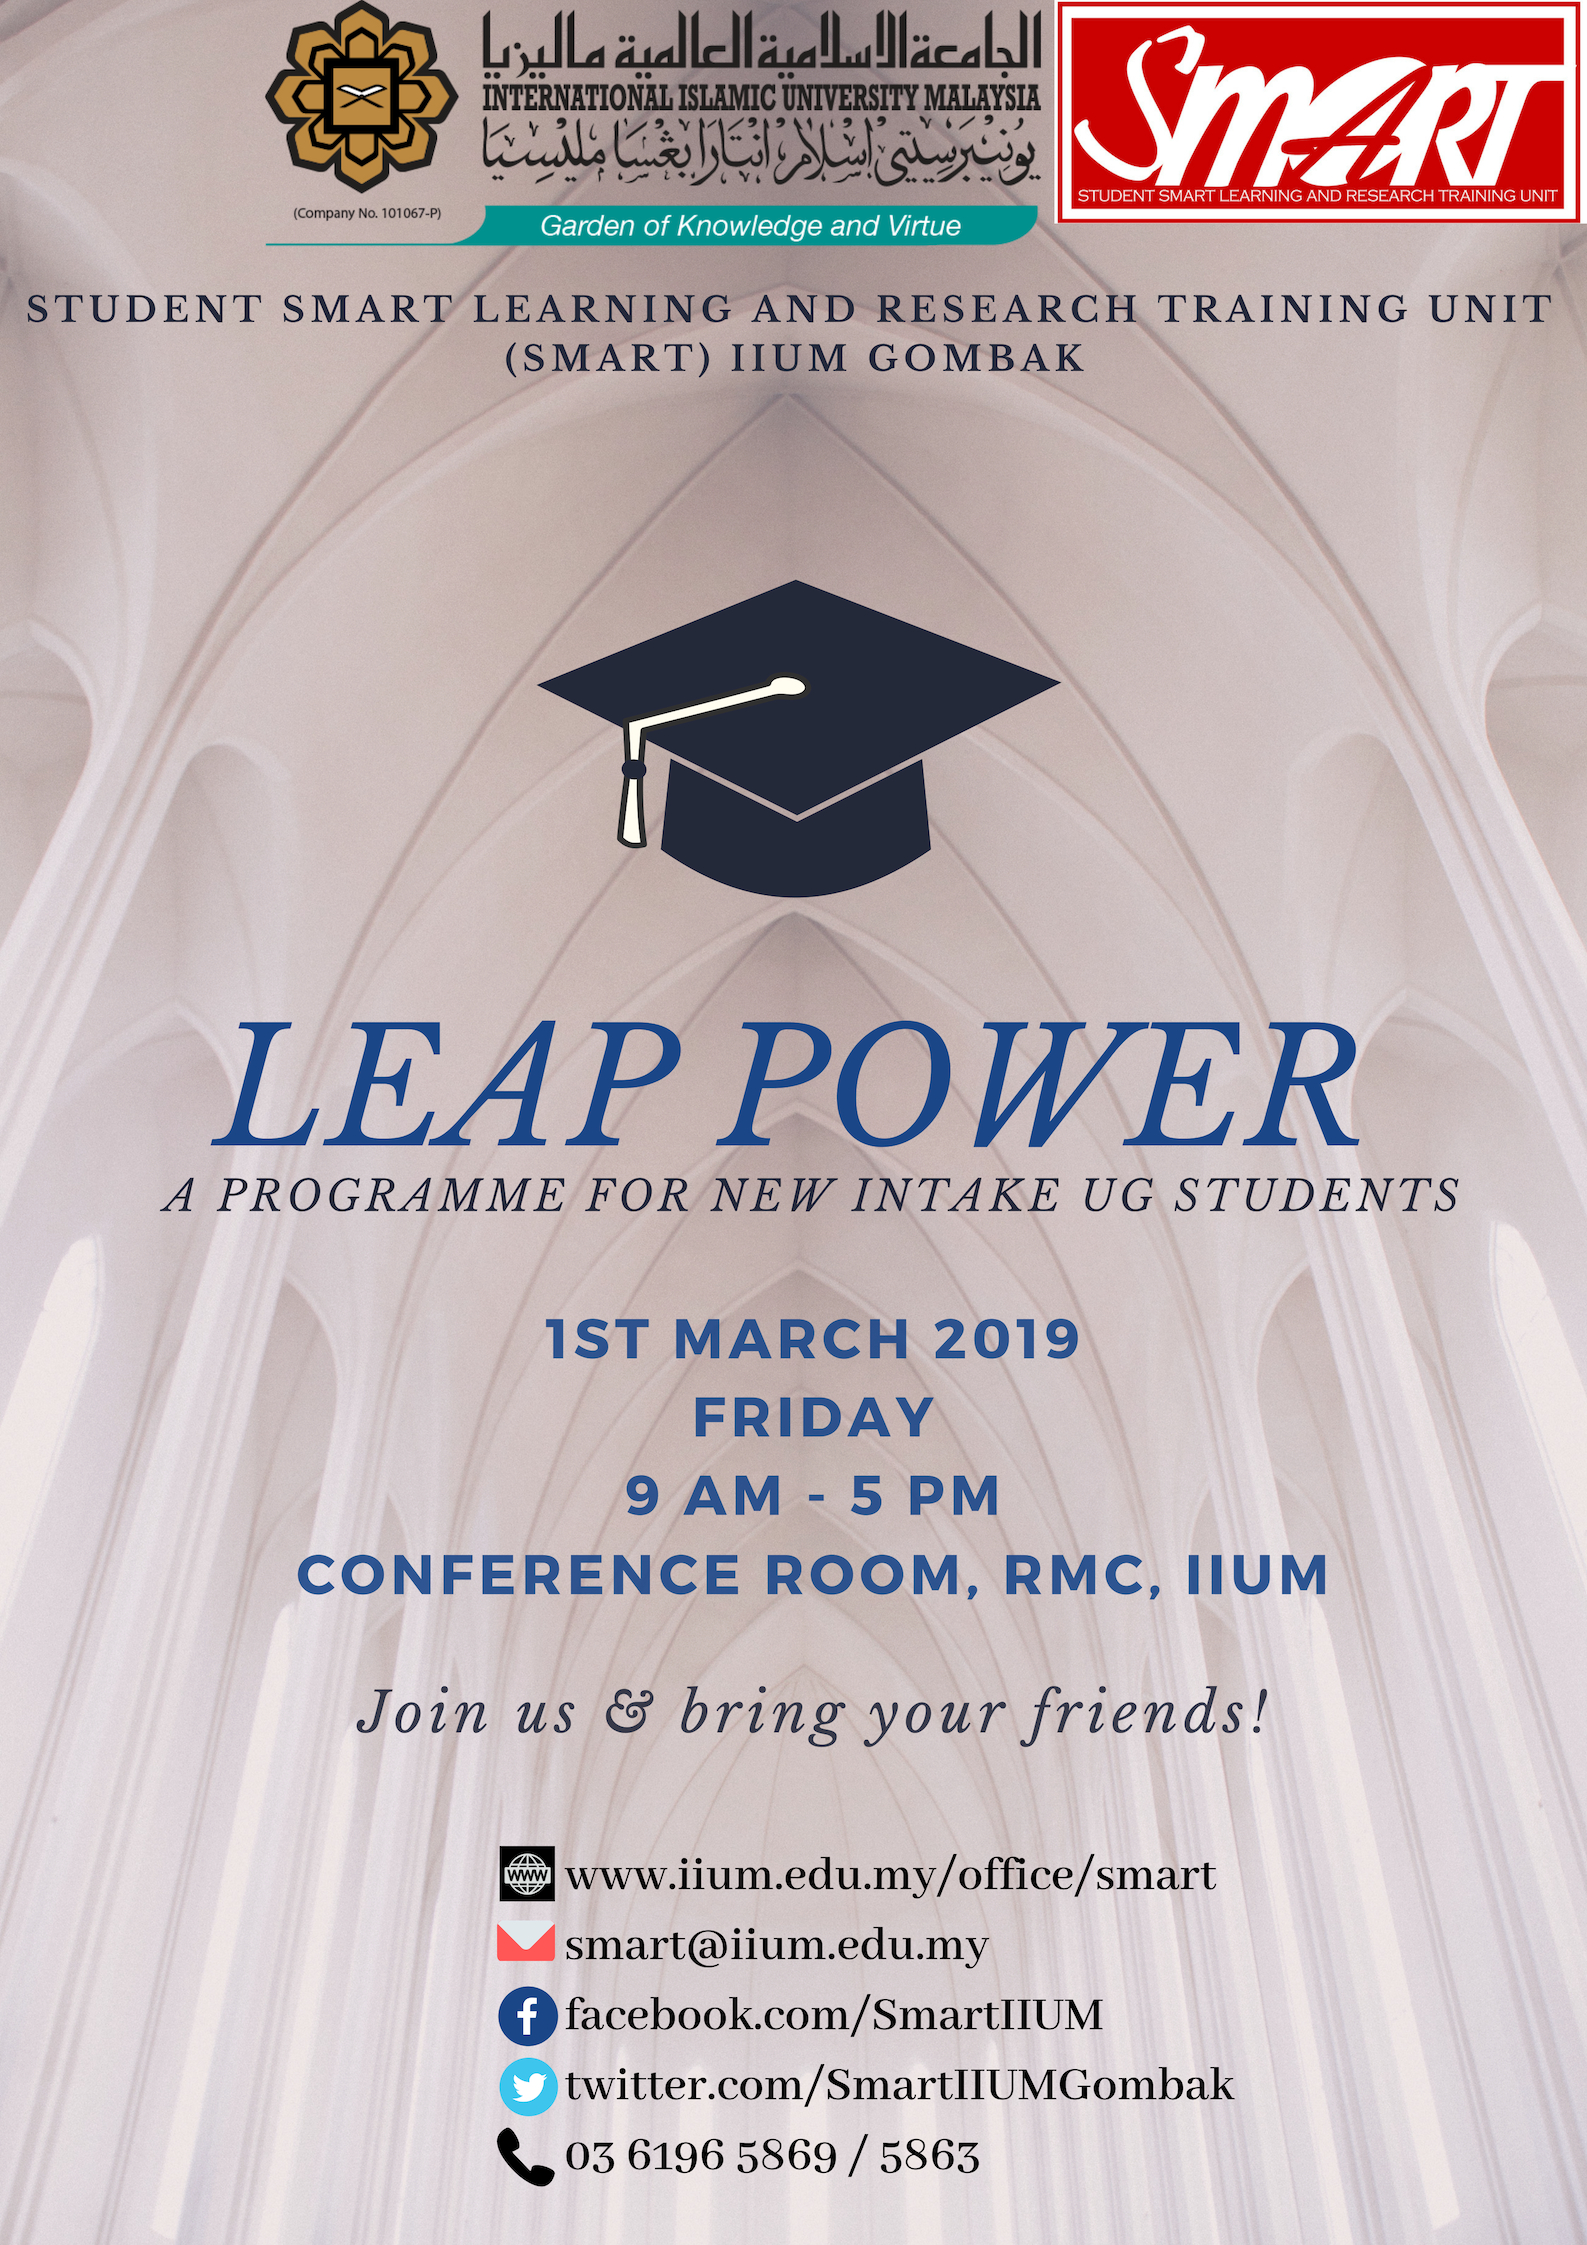 LEAP POWER FOR UG INTAKE, SEM 2 2018/2019